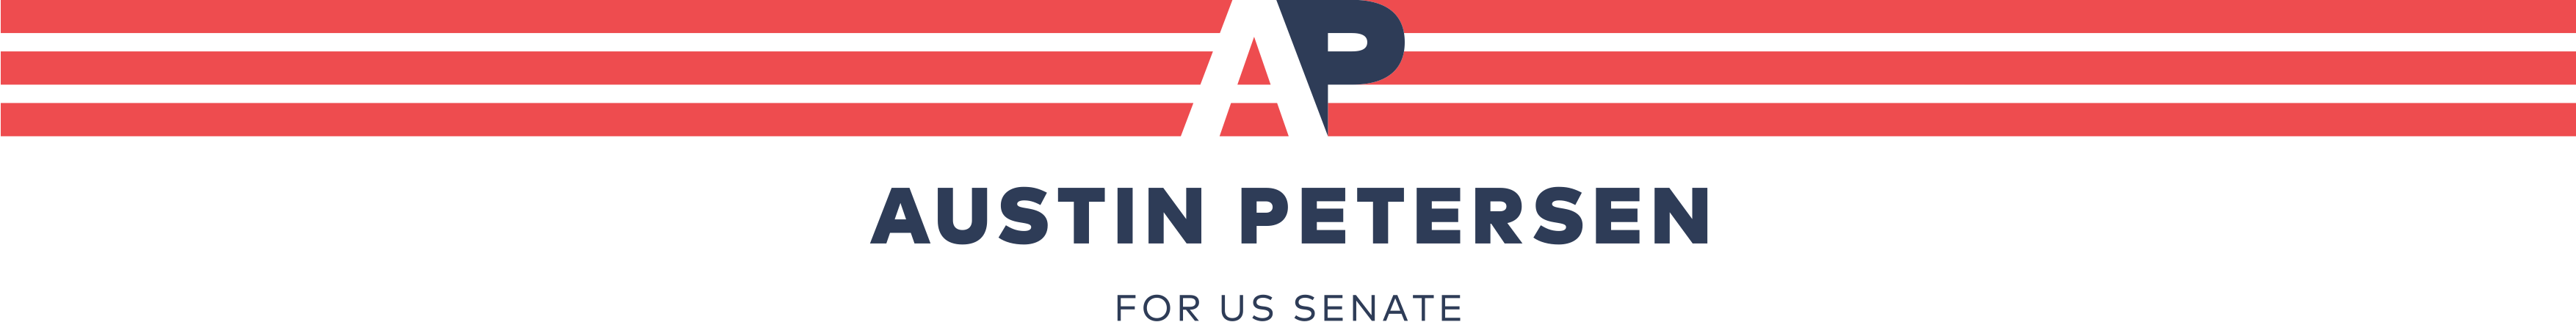 Austin Petersen for US Senate